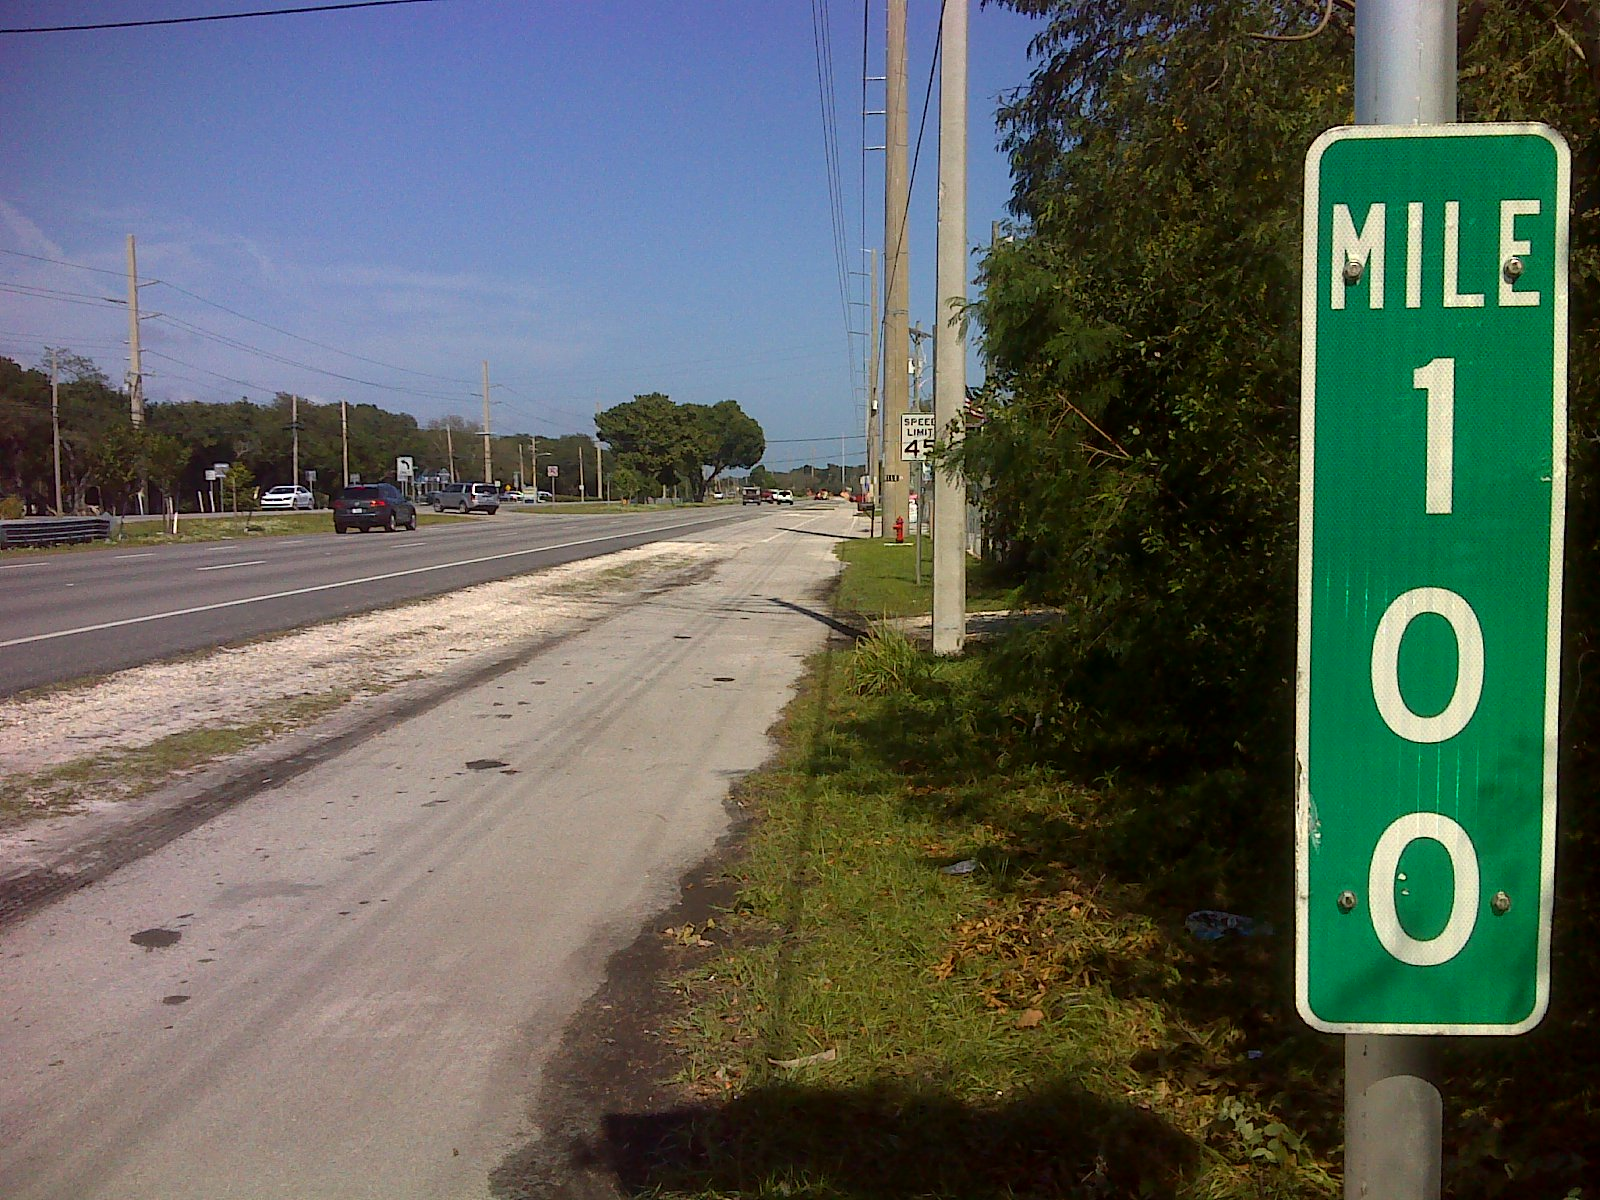 Green mile 0 sticker indicating their love of key west im familiar with the importance given to mile markers on many east coast beaches